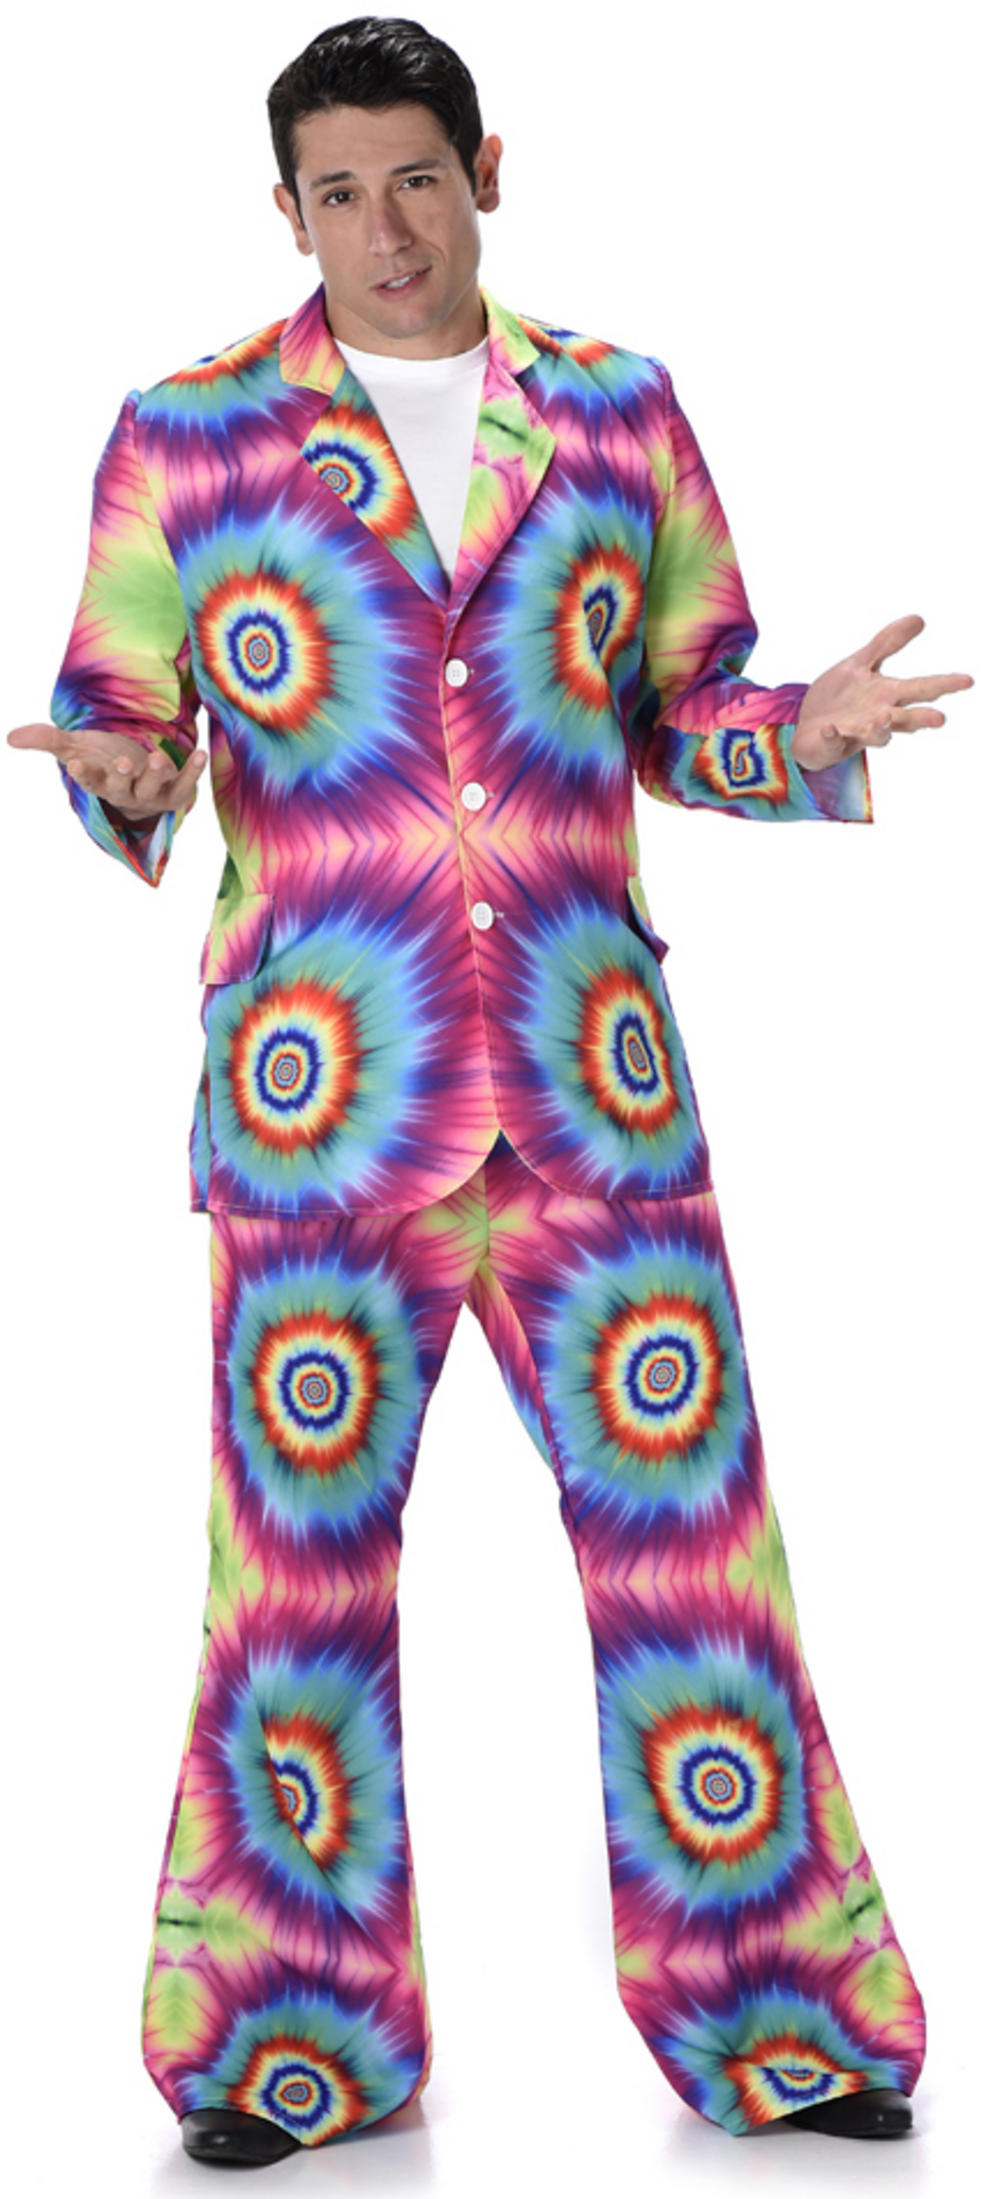 Tie Dye Suit Mens Costume